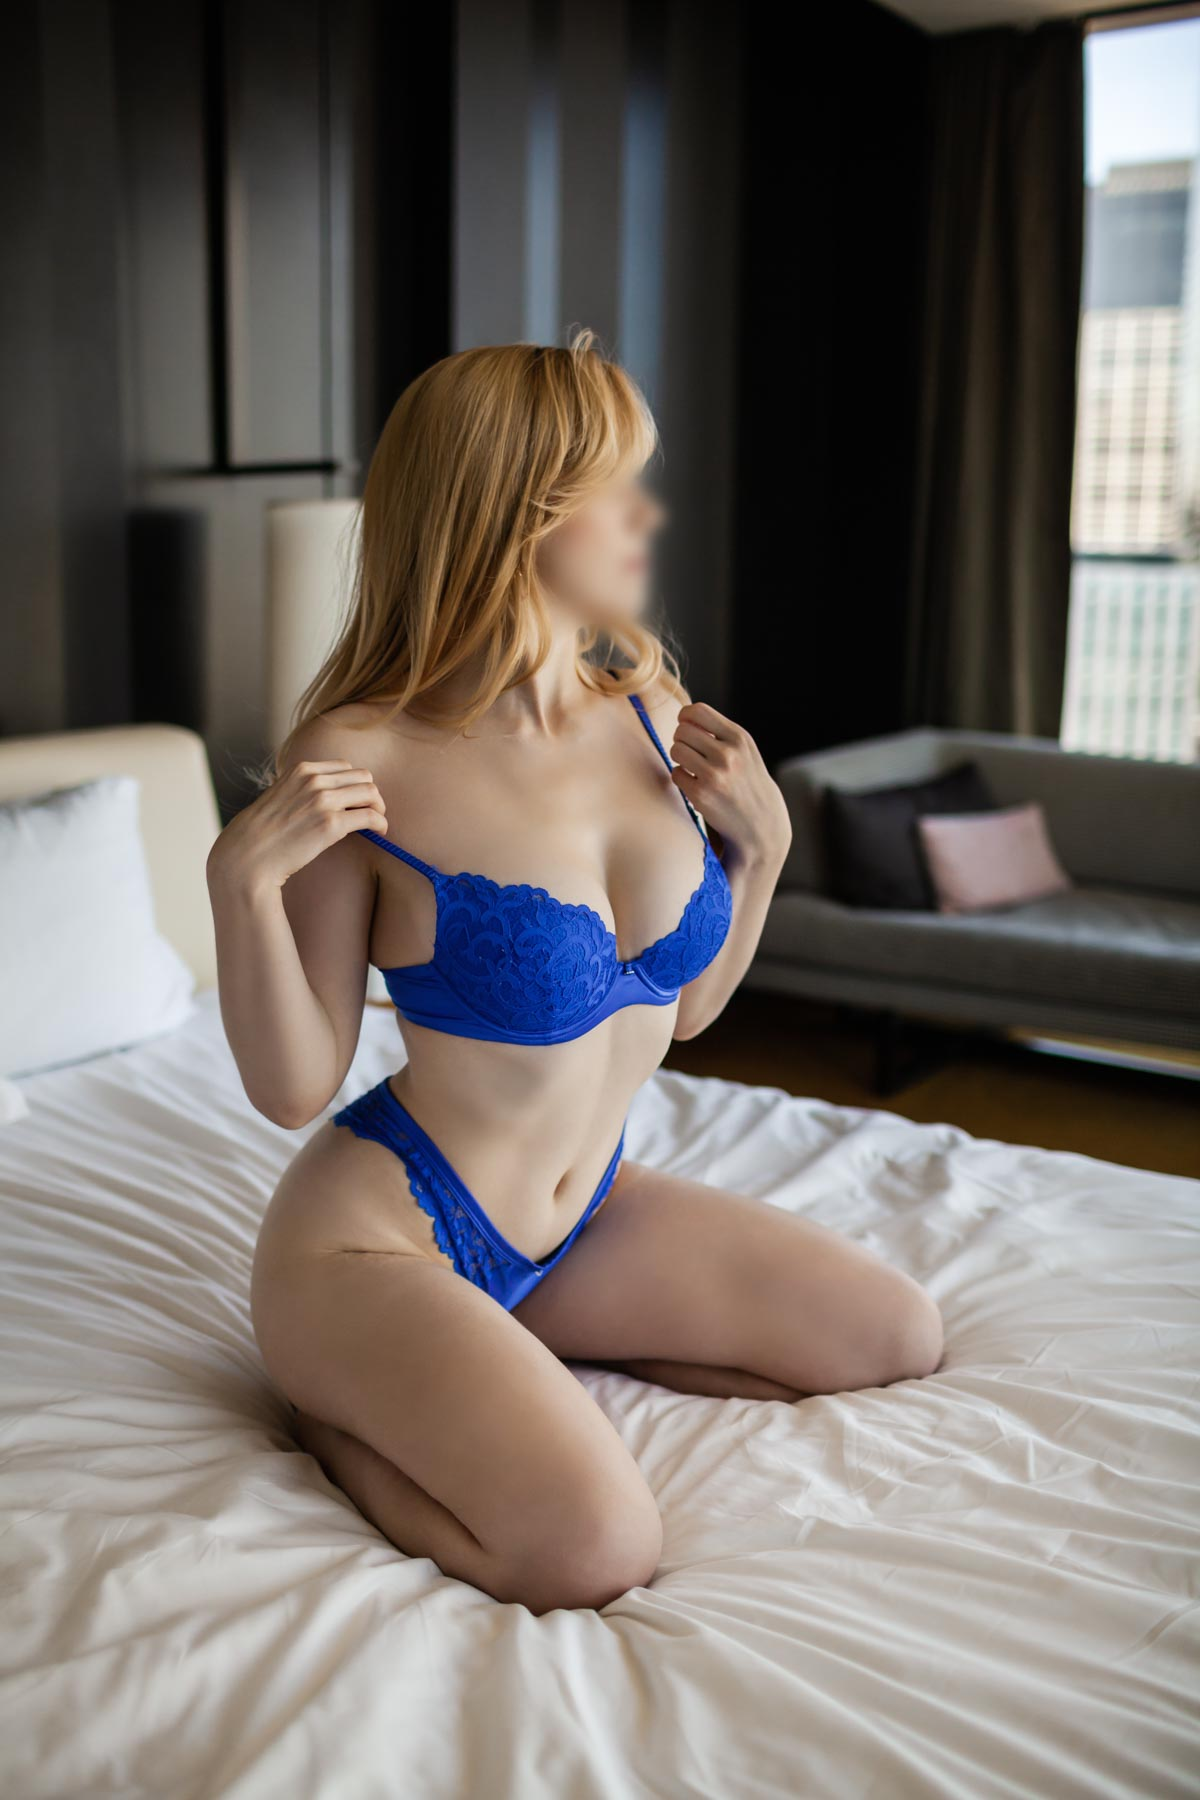 Kitty escort photography Melbourne-13.JPG